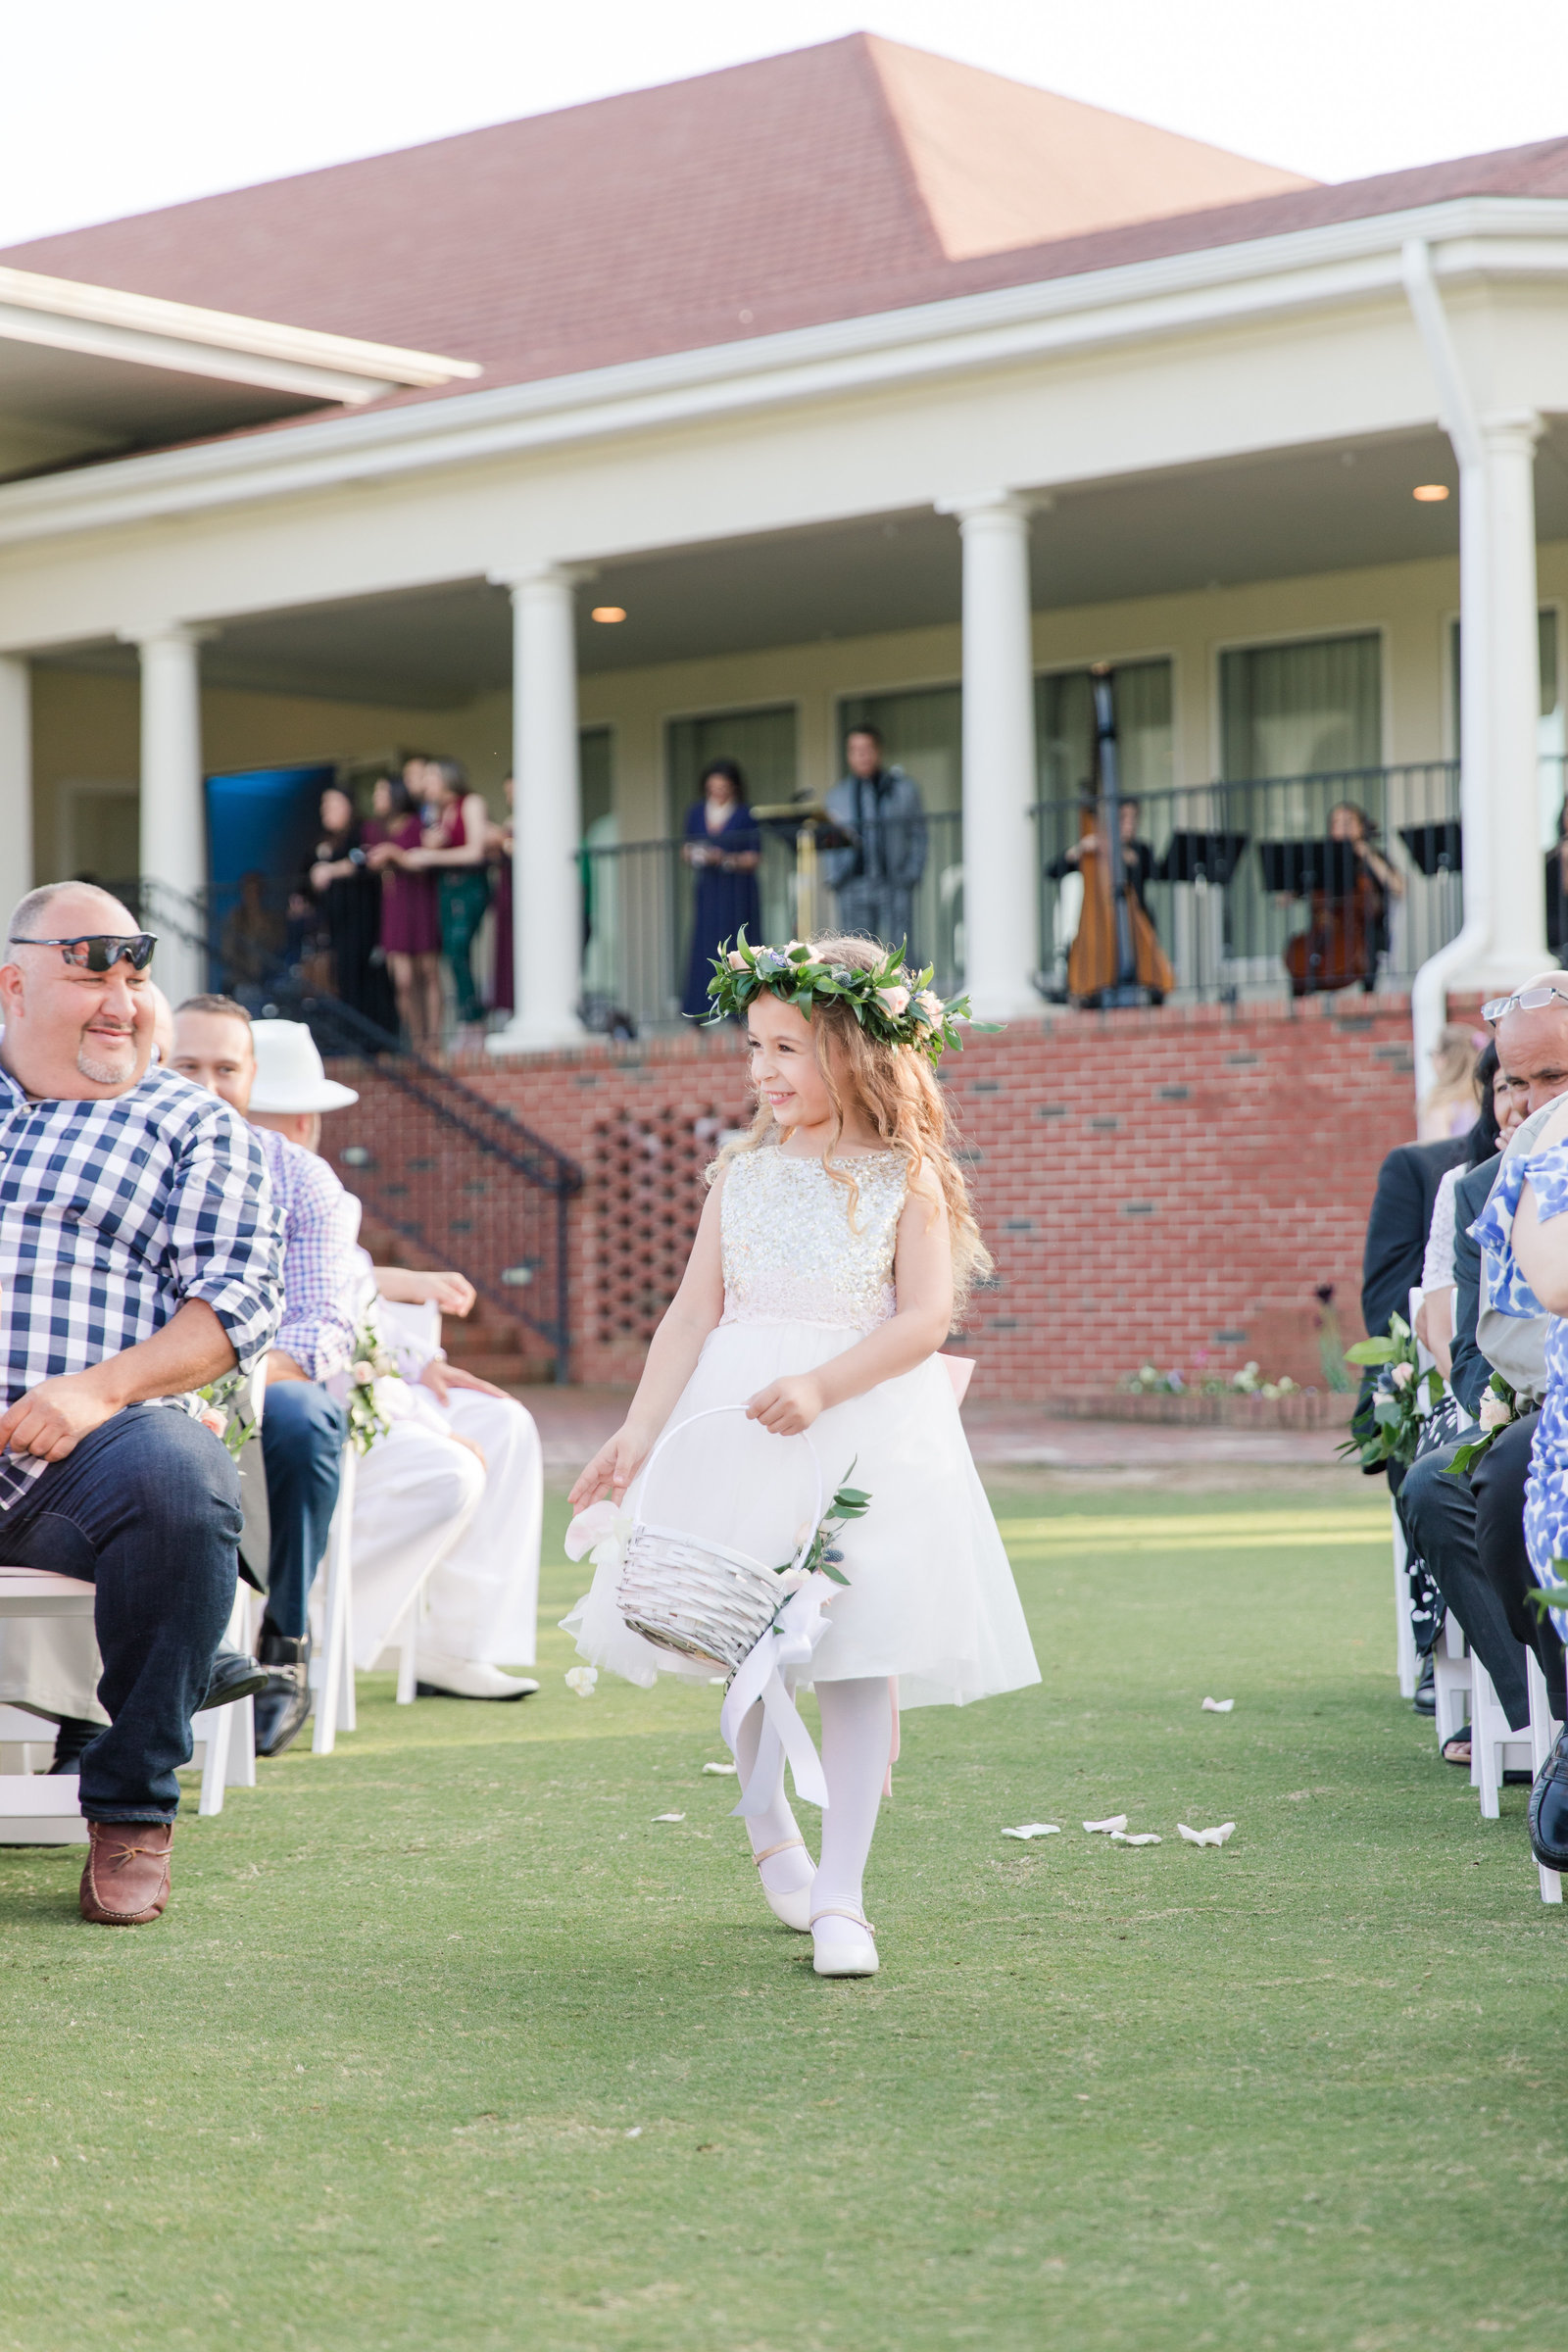 Jennifer_B_Photography-Pinehurst_Club-Pinehurst_NC-Wedding_Day-Caleb___Miranda-JB_Favs-2019-0149